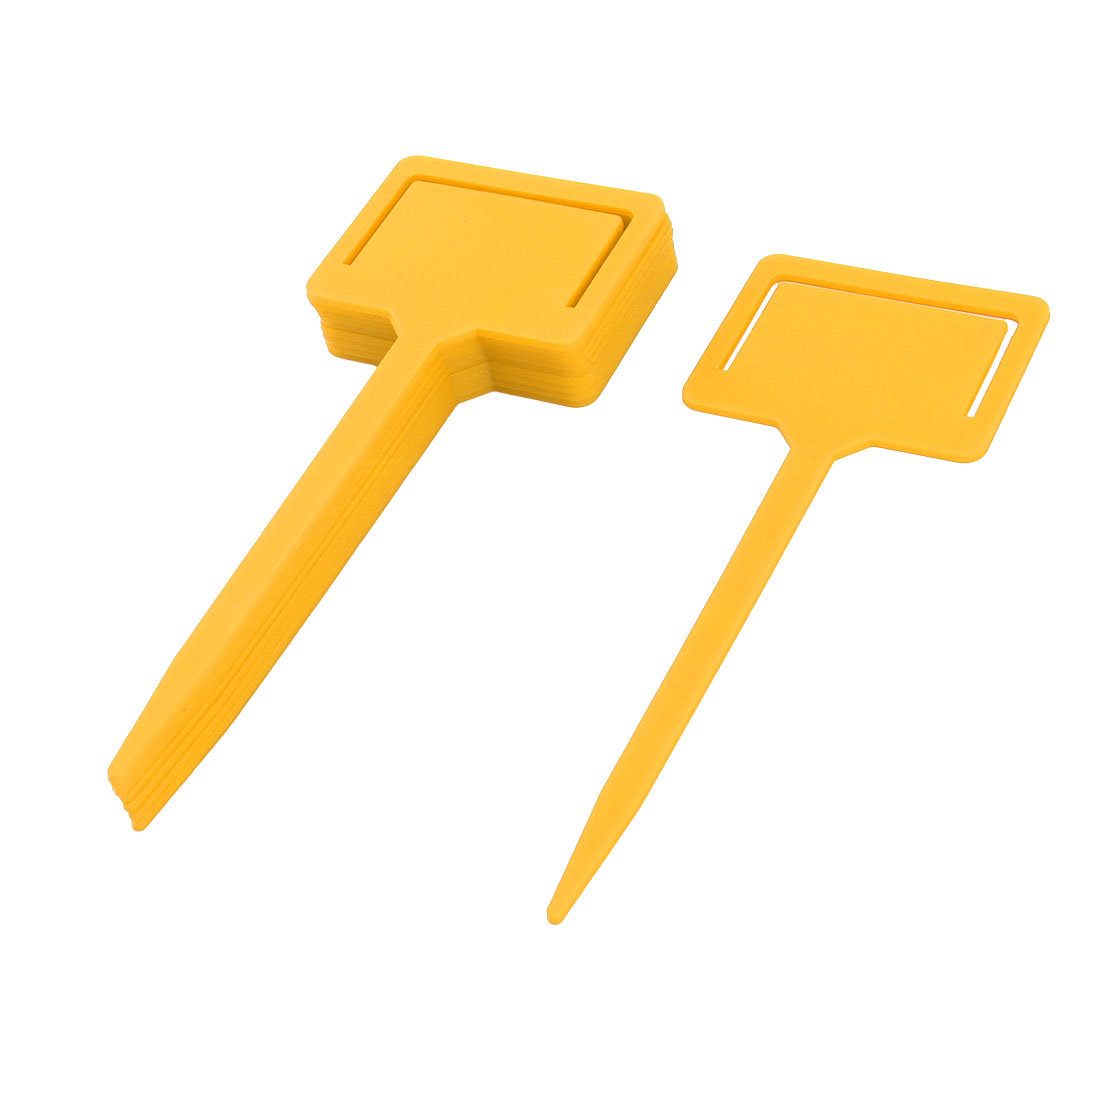 Garden Plastic Rectangle Head Plant Flower Name Marking Tag Label Yellow 10pcs